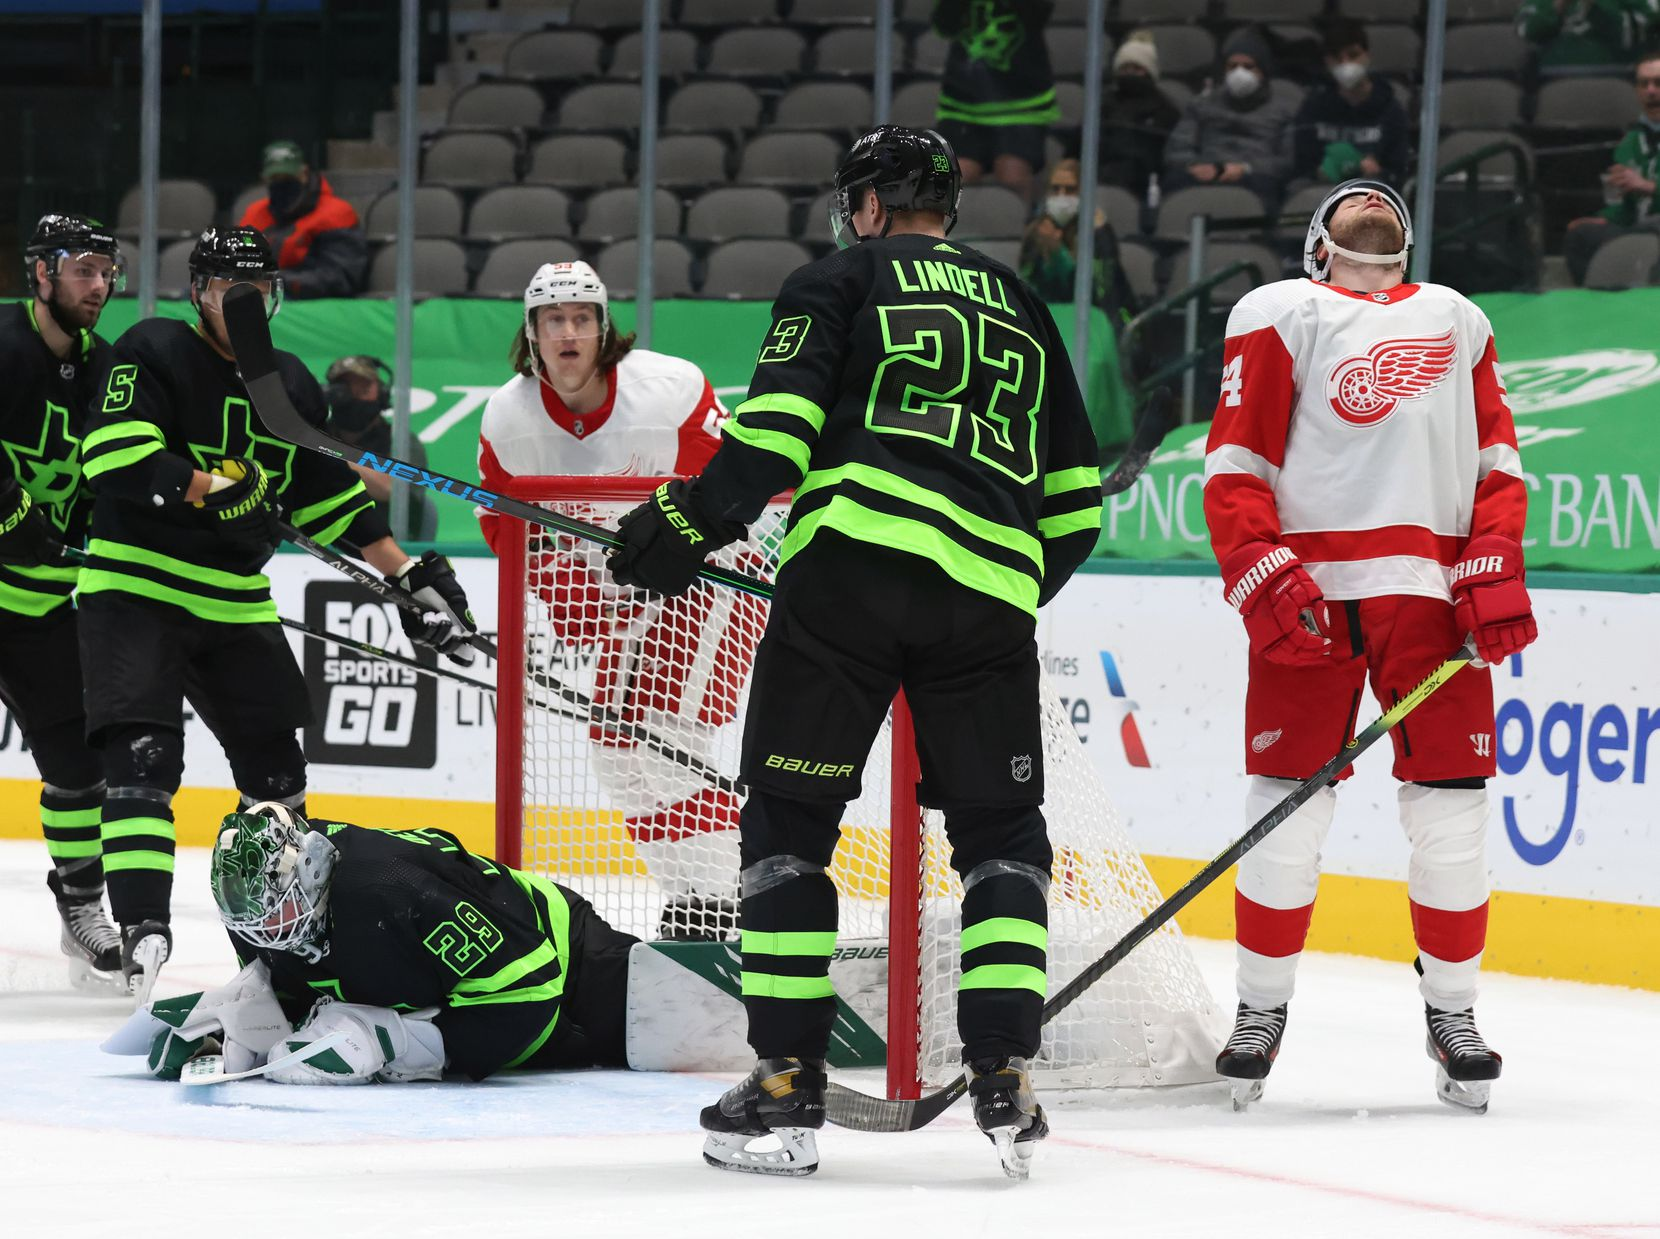 Detroit Red Wings right wing Bobby Ryan (54) reacts after they nearly scored as Dallas Stars goaltender Jake Oettinger (29) secures the puck during the second period of play at American Airlines Center on Thursday, January 28, 2021in Dallas. (Vernon Bryant/The Dallas Morning News)